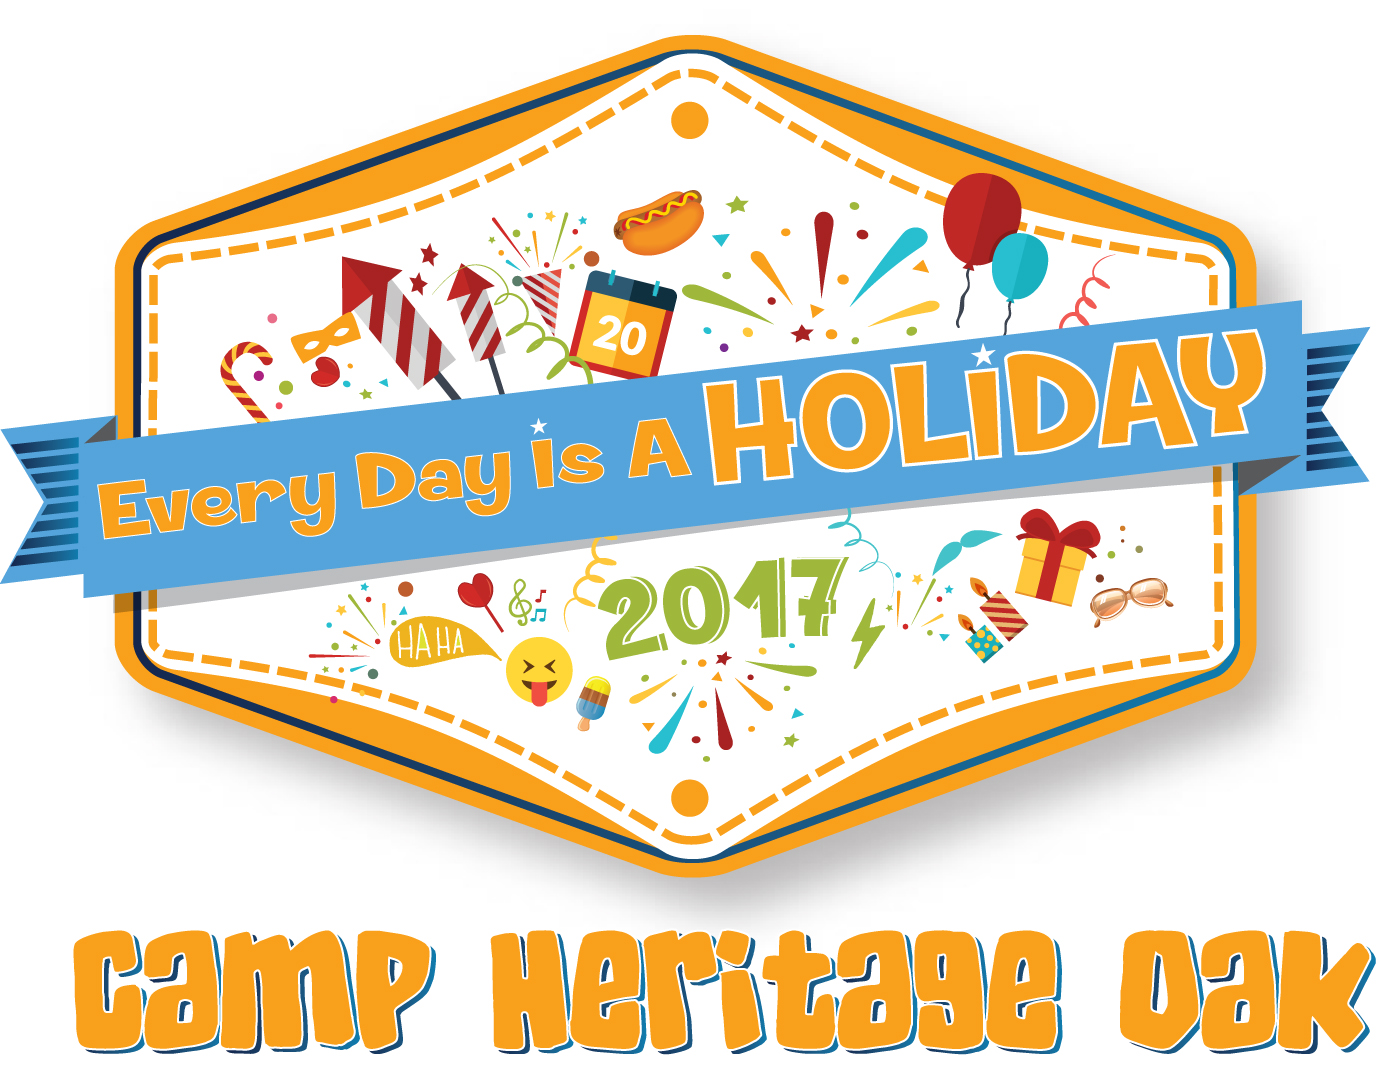 Camp Heritage Oak - Where Every Day is a Holiday